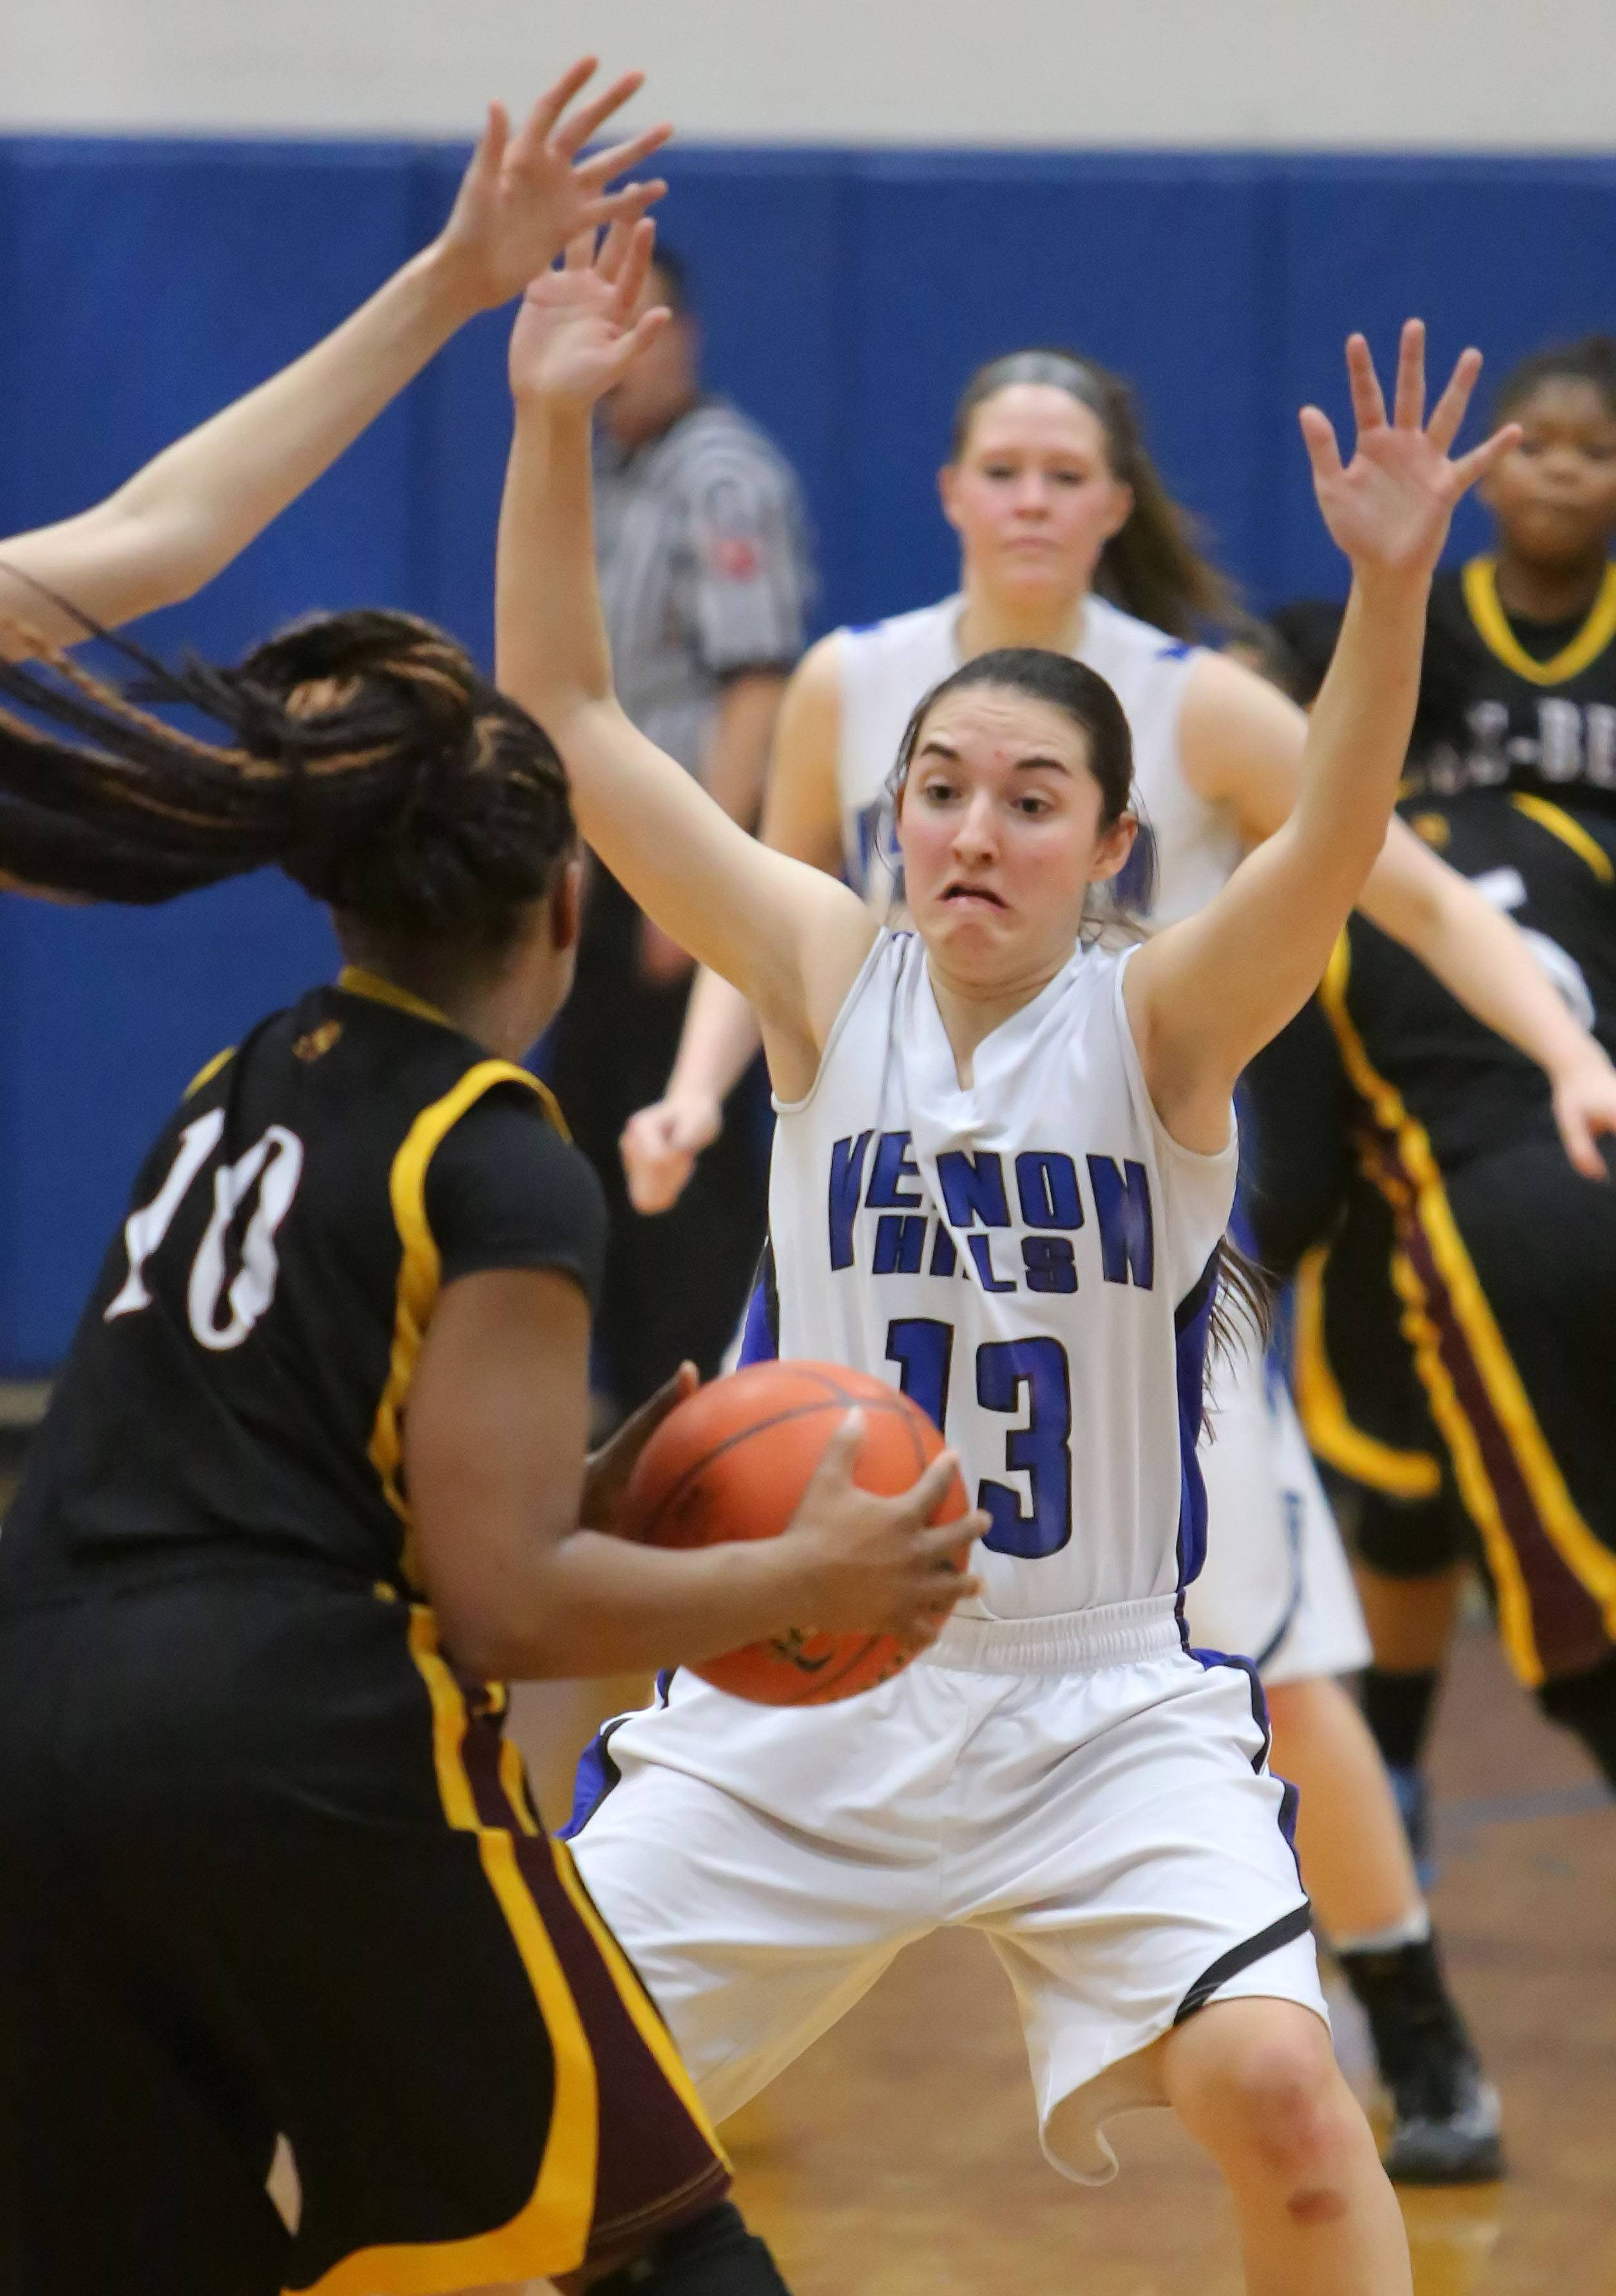 Vernon Hills' Katherine Koczwara, right, defends Zion-Benton's Tyvena Scafe during the North Suburban Conference championship game Wednesday night at Vernon Hills.